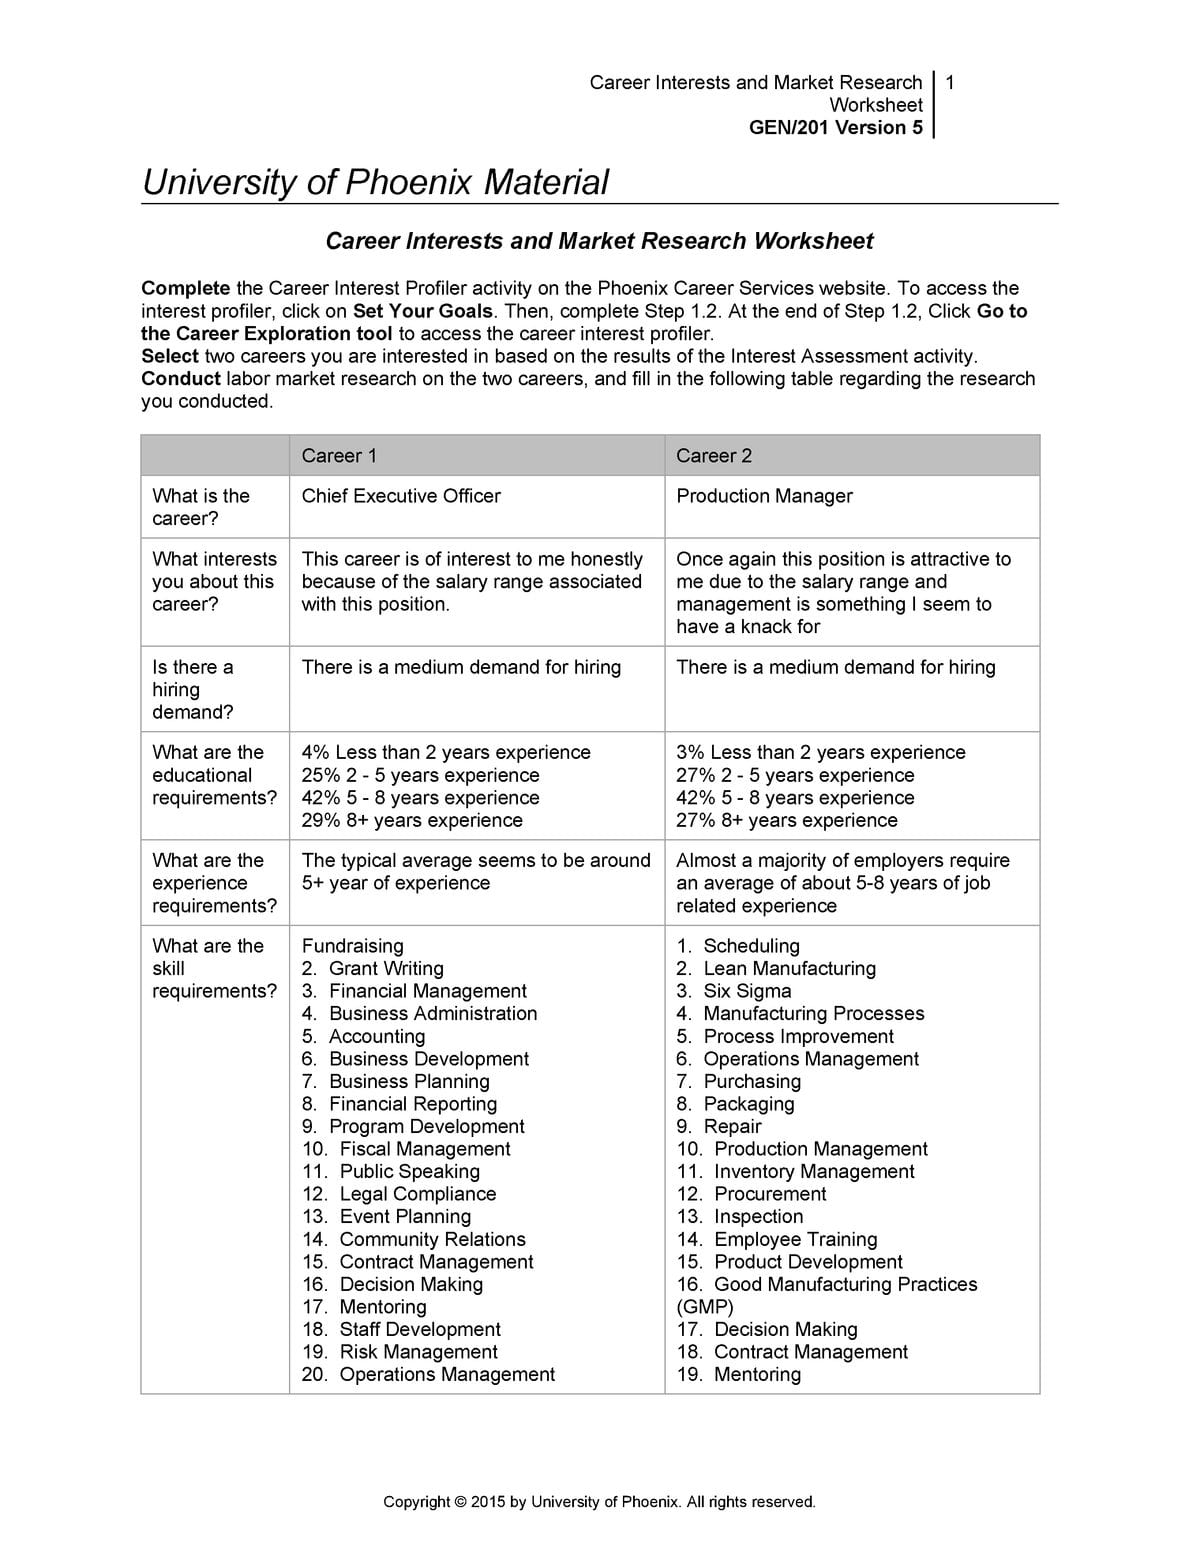 Career Interests And Market Research Worksheet Gen 201